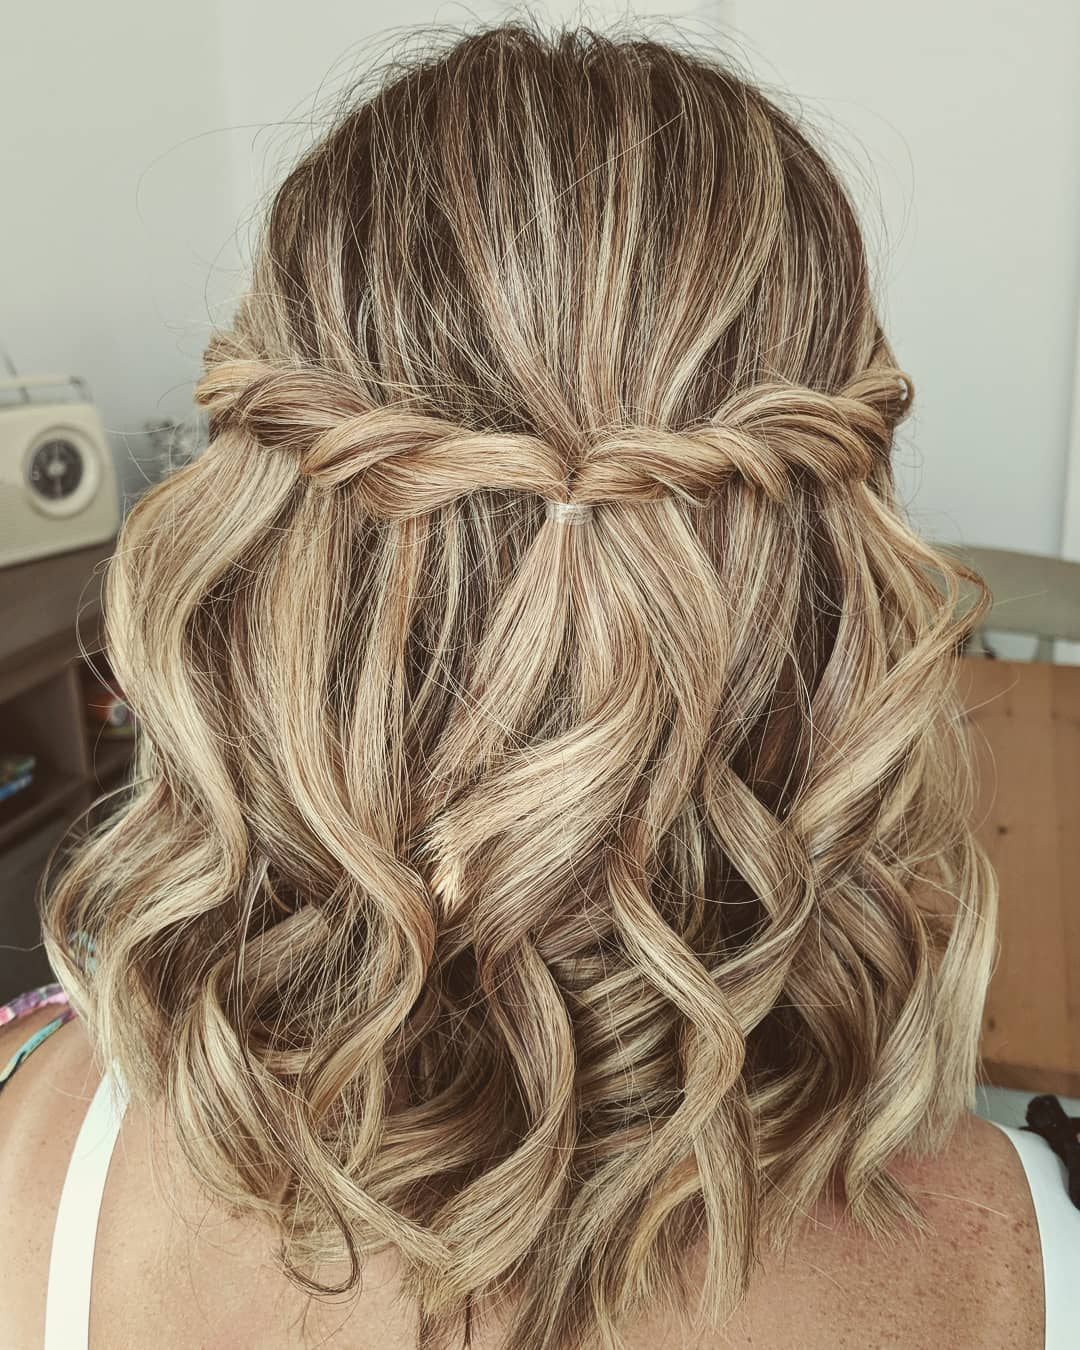 Curly Half Updo with Twists